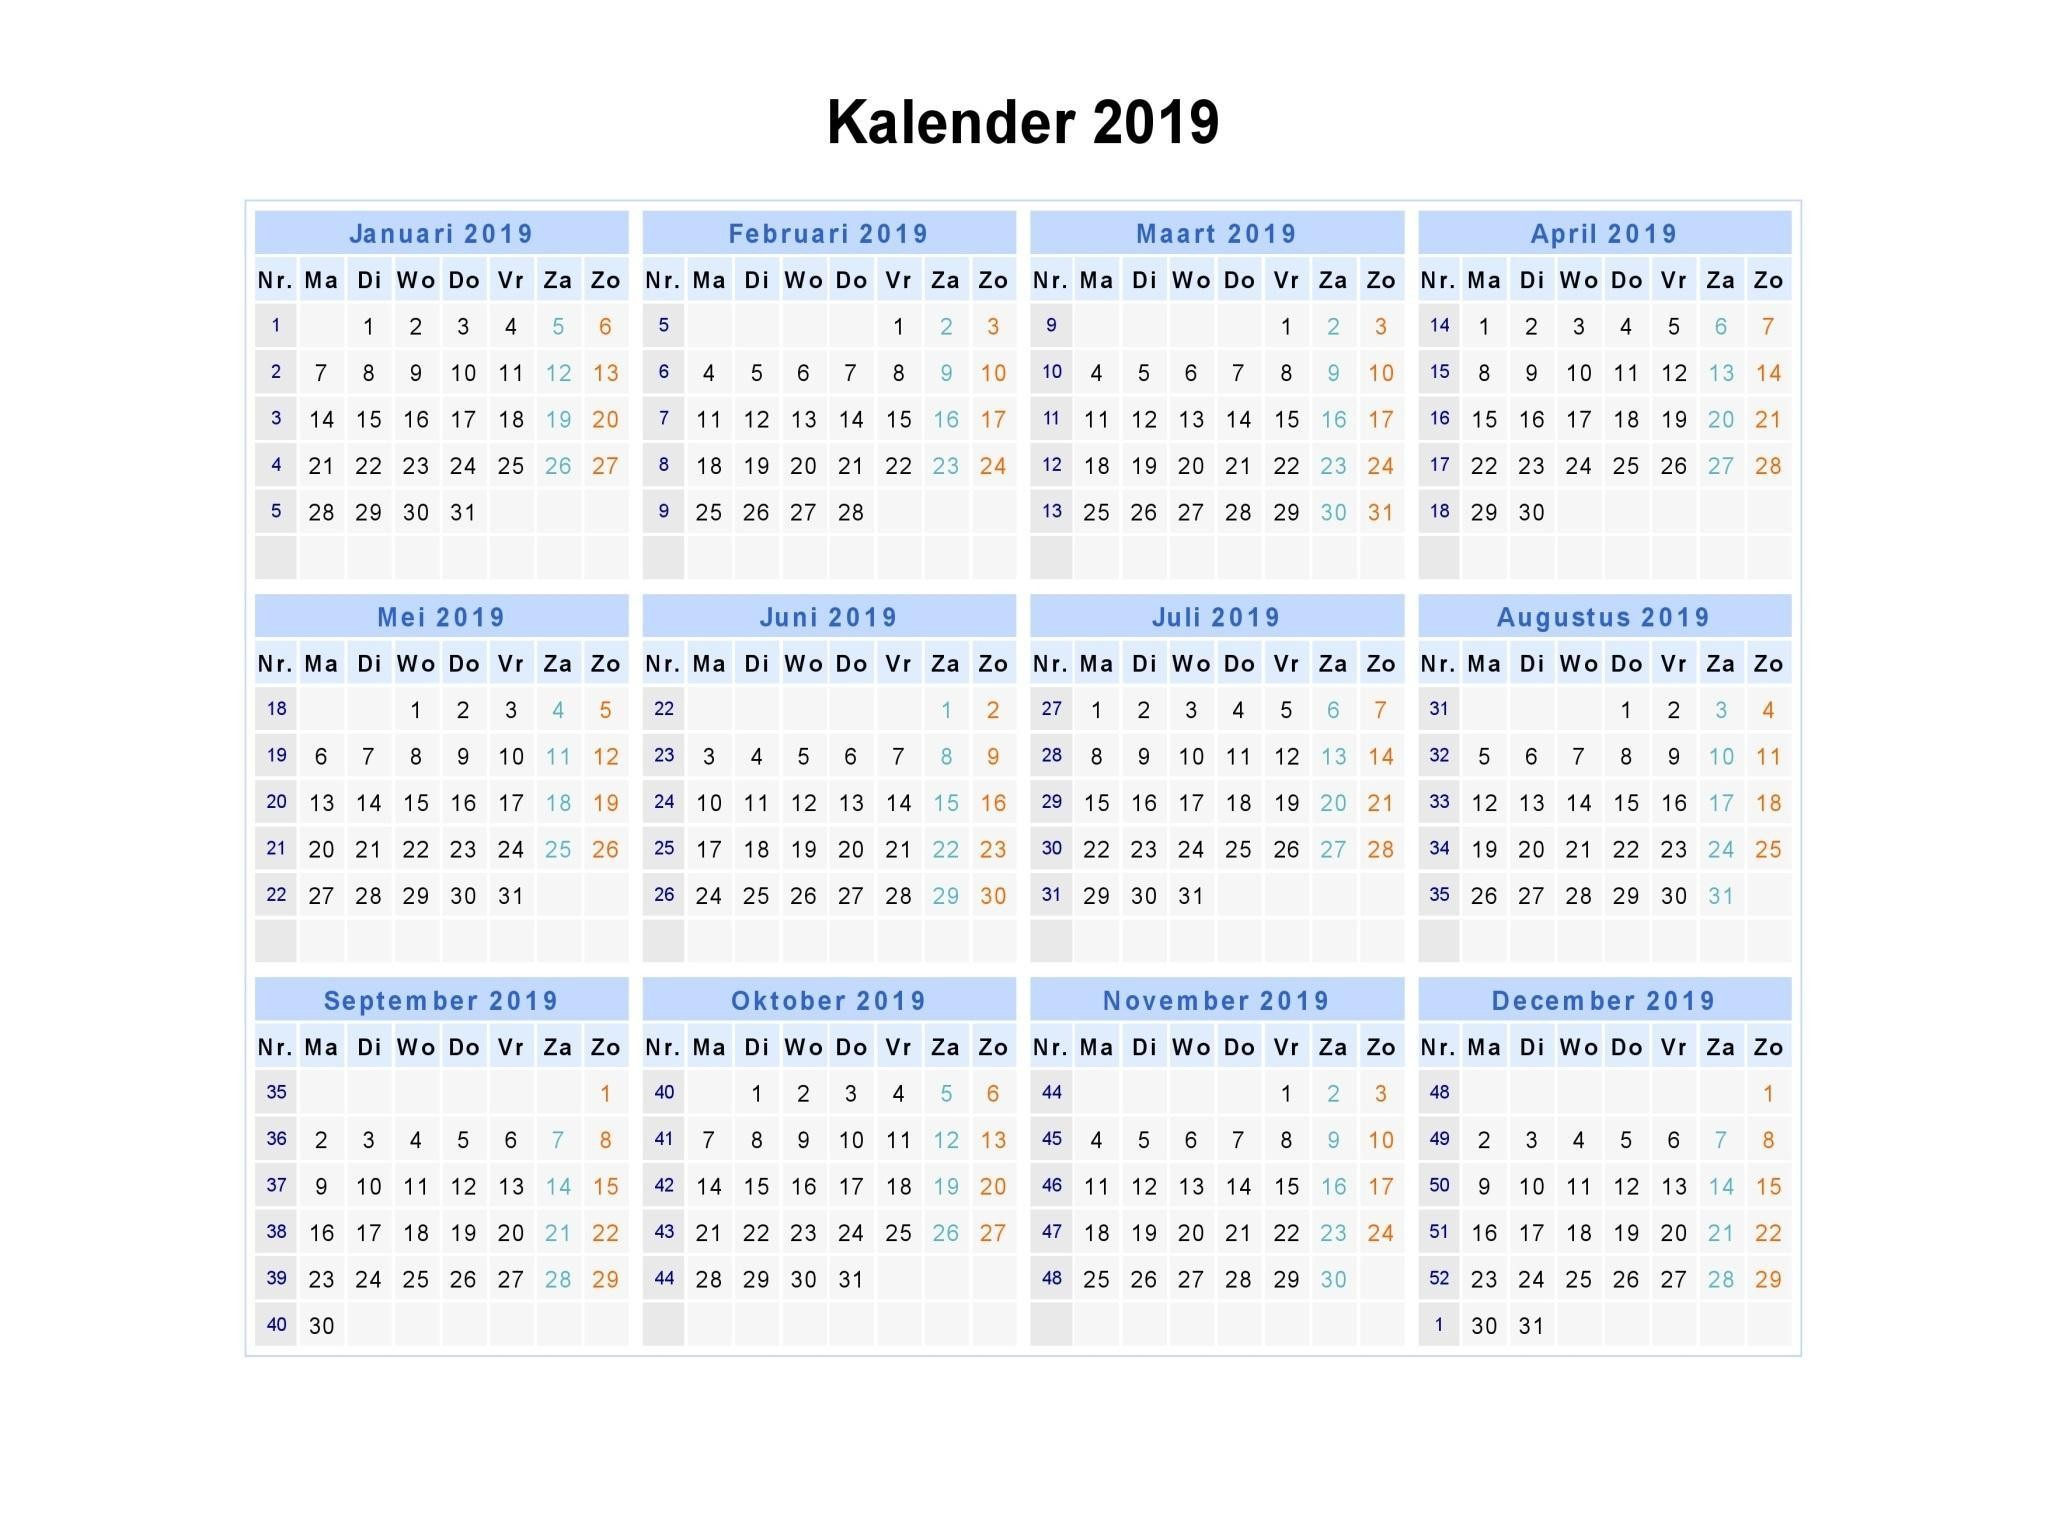 2019 March Calendar Kalnirnay Actual Kalendar Kuda July 2017 Of 2019 March Calendar Kalnirnay Más Arriba-a-fecha Calendar 2018 Kuda